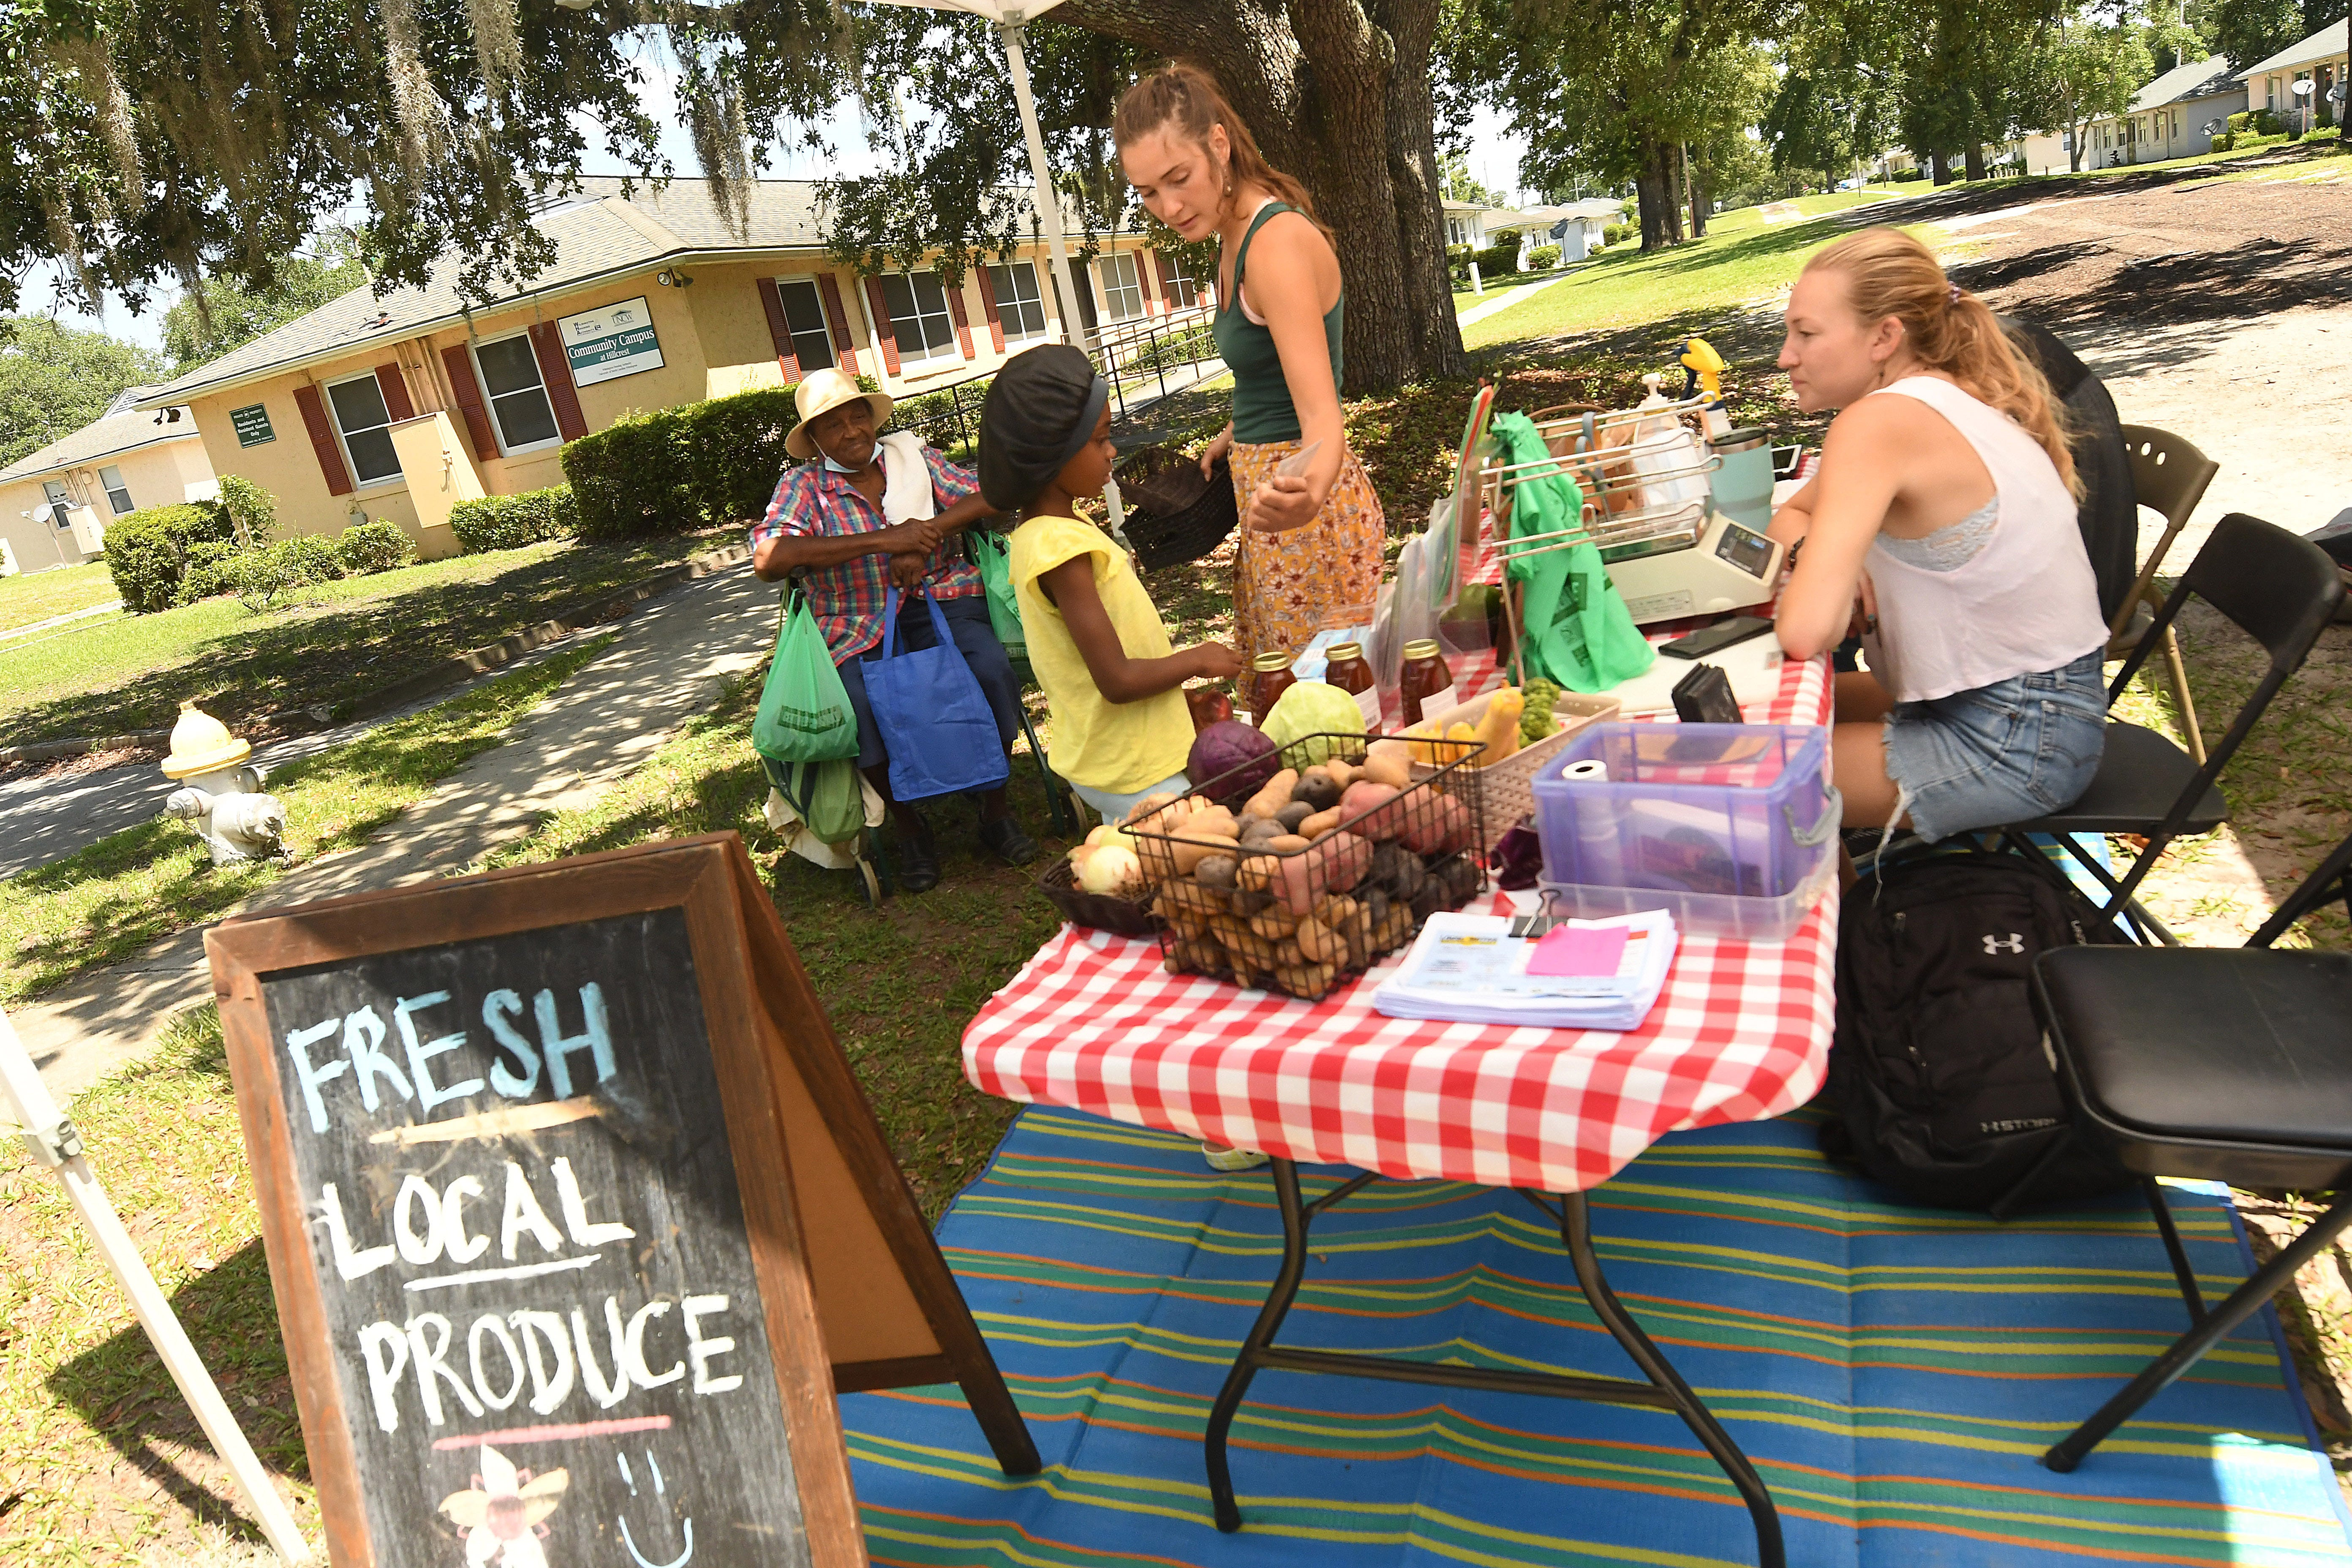 Clarisse Owens shares recipes with her customers as she and Alyssa Wood sell fresh produce in the Hillcrest community in Wilmington, N.C.